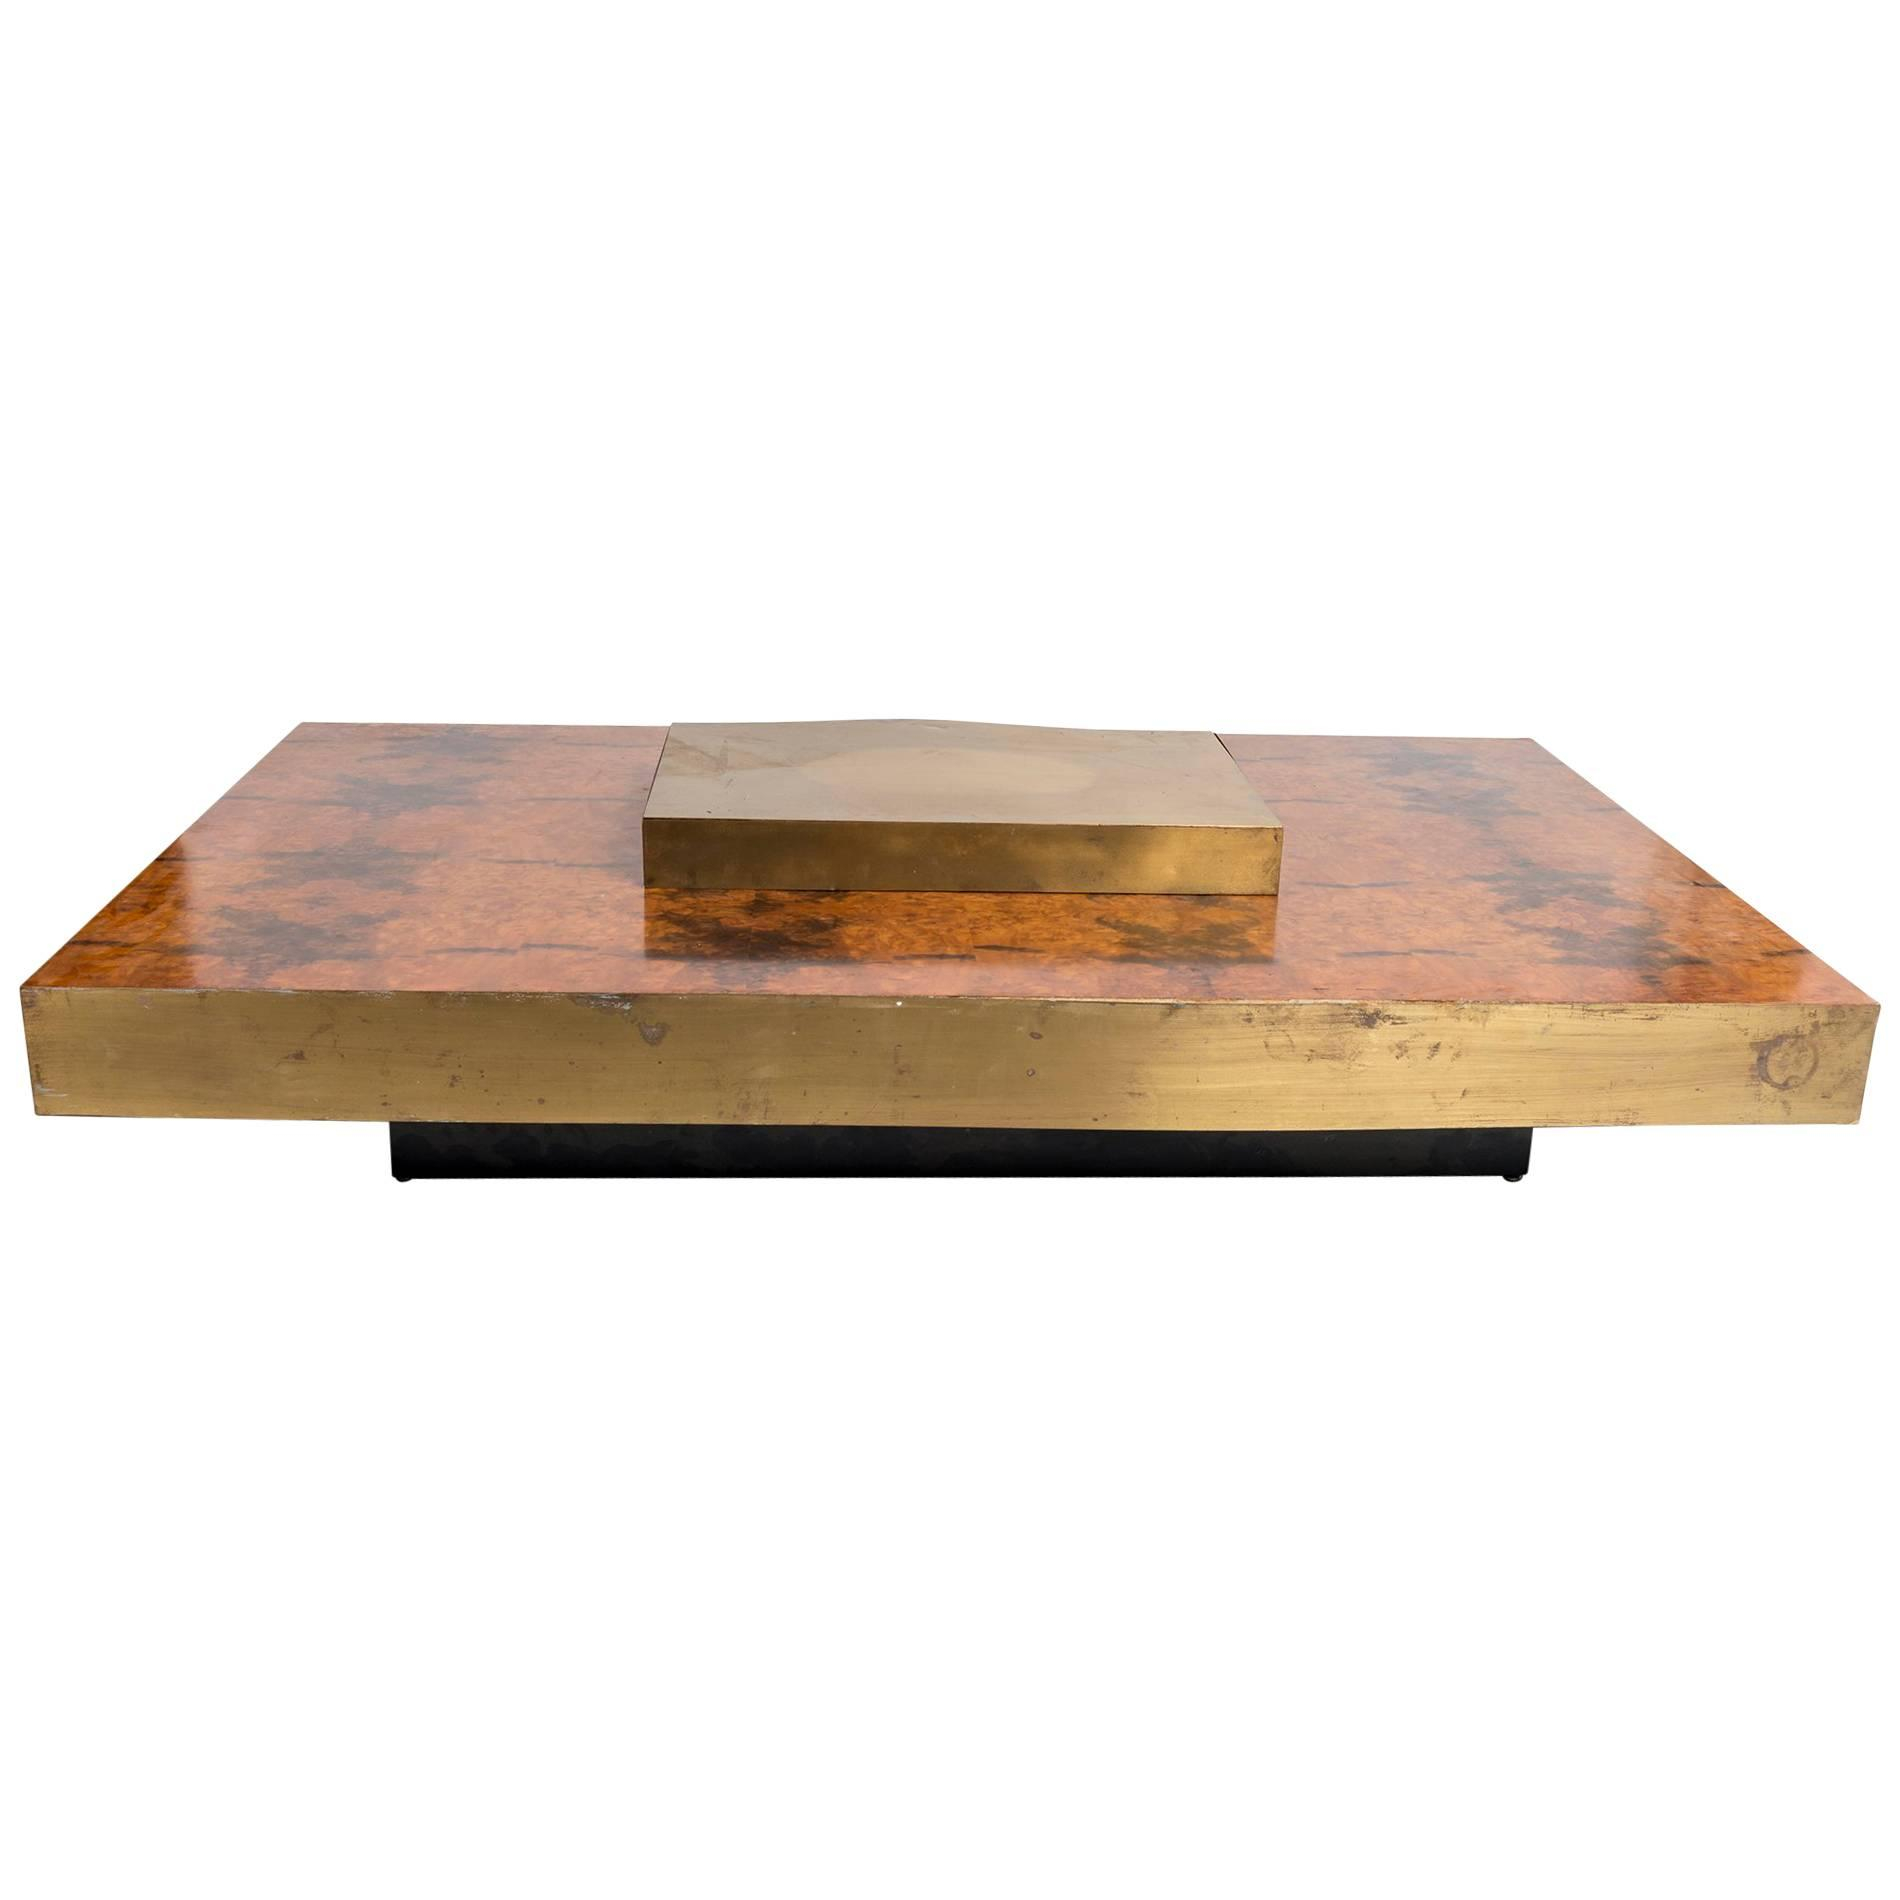 Rectangular Low Brass Center Wooden Coffee Table With Brass Trim For regarding size 1900 X 1900